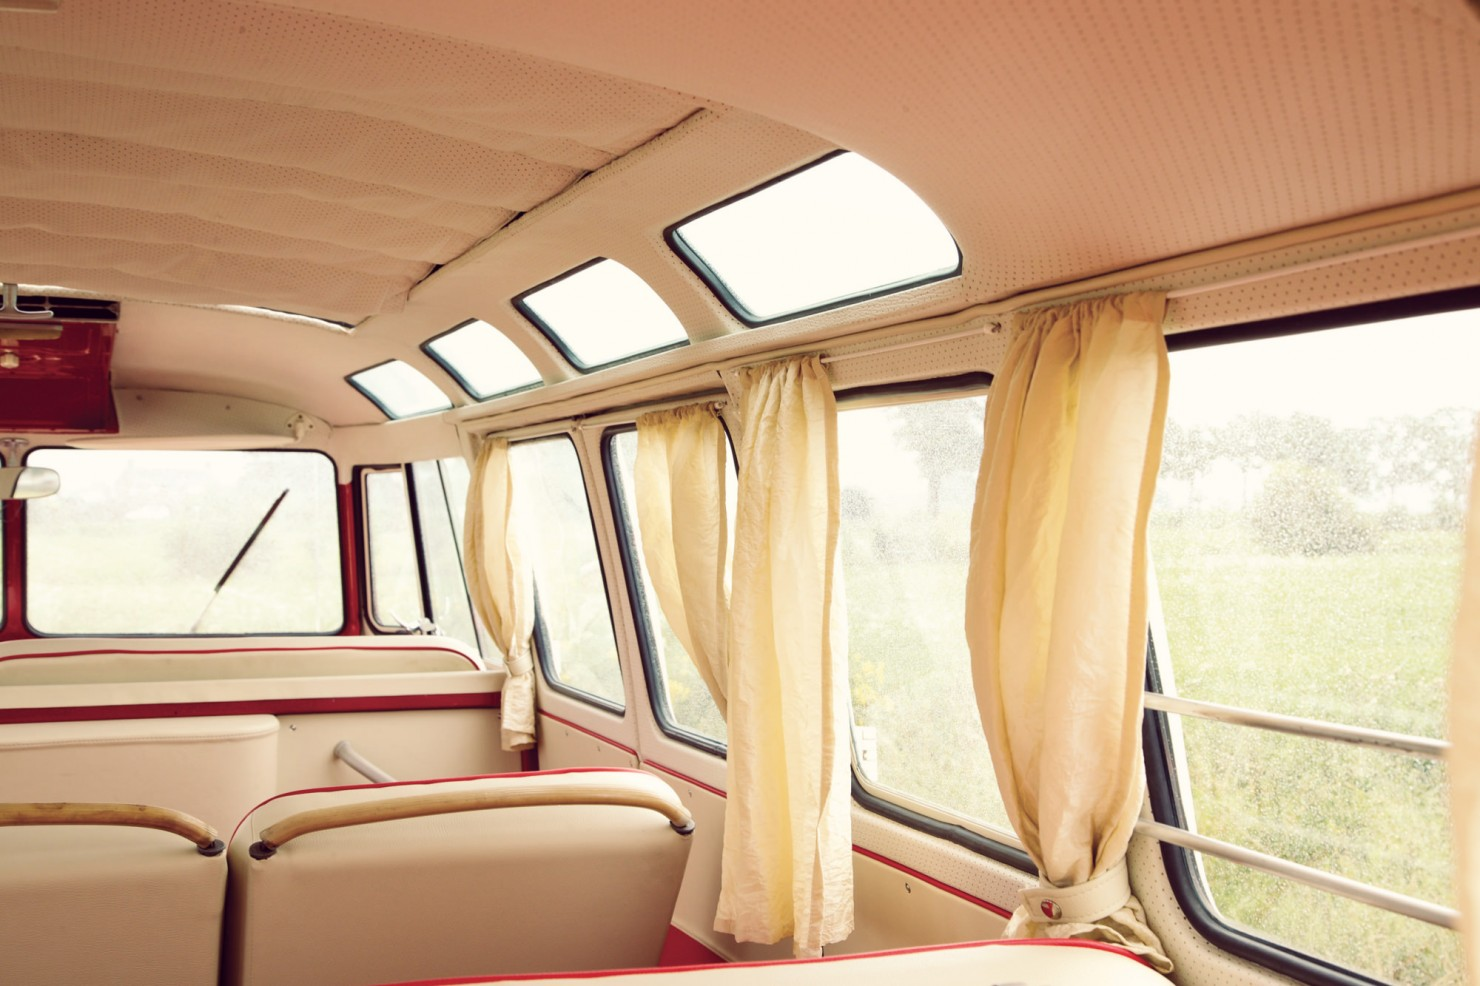 Volkswagen_21-Window_Micro_Bus_12